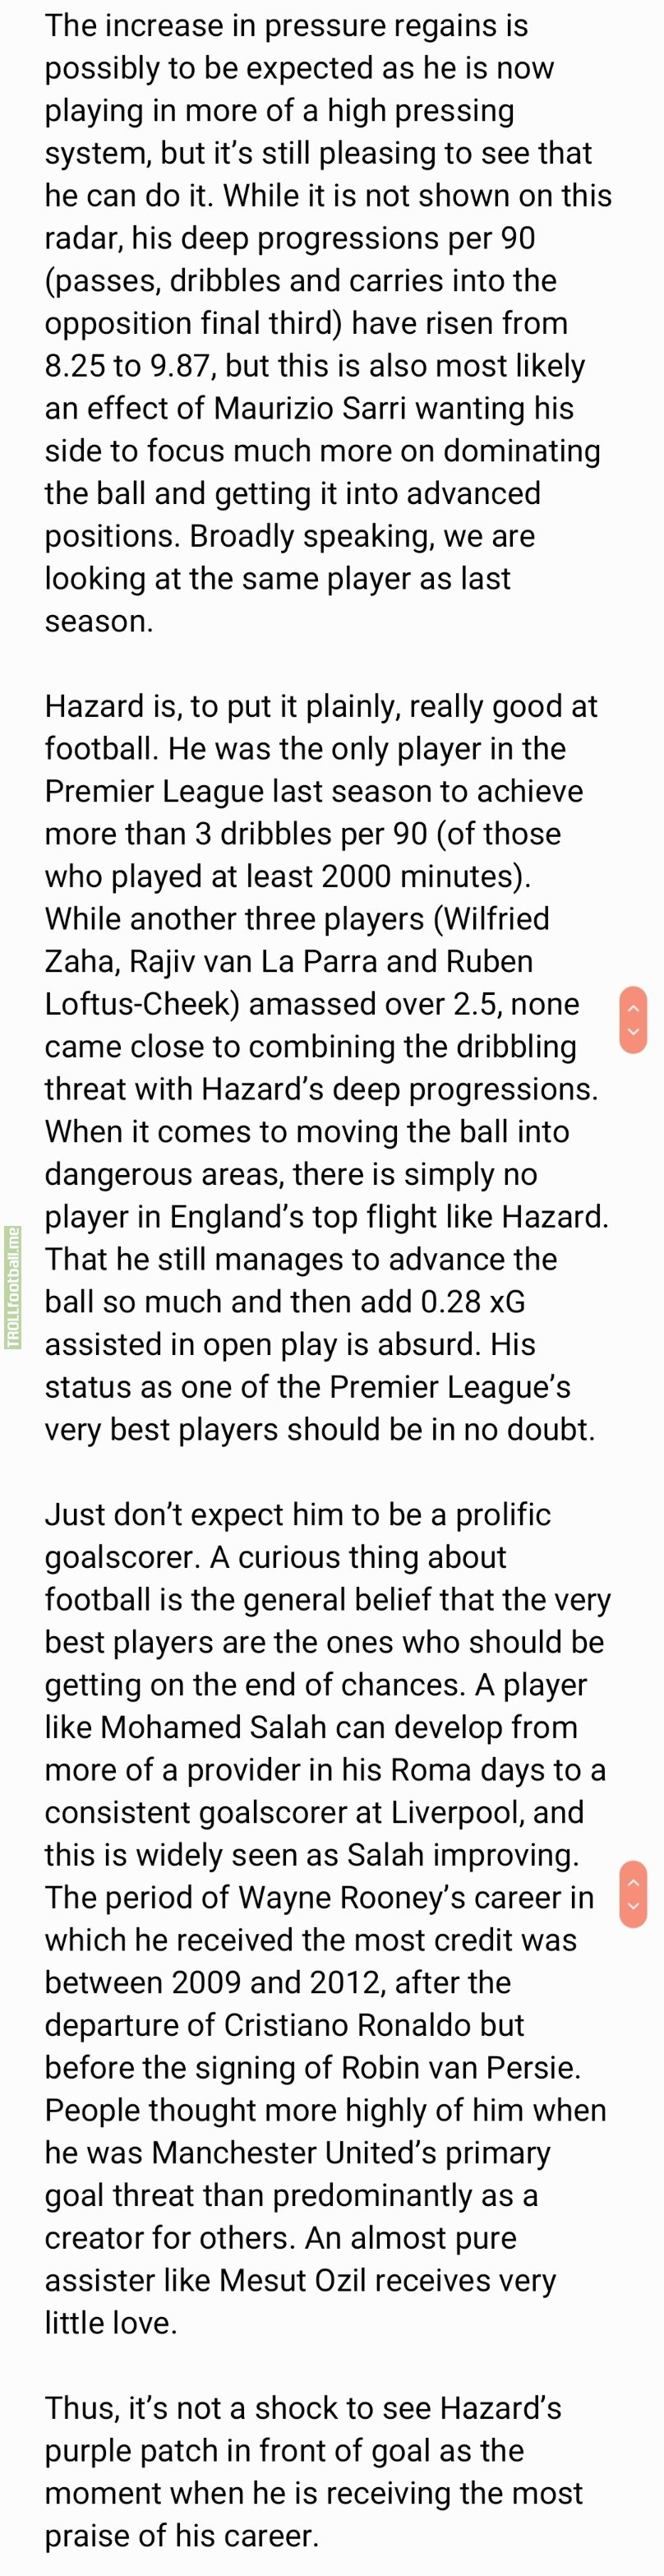 Excerpt from a StatsBomb piece at this time last year explaining what Hazard brought to the table at Chelsea [full link in comments]